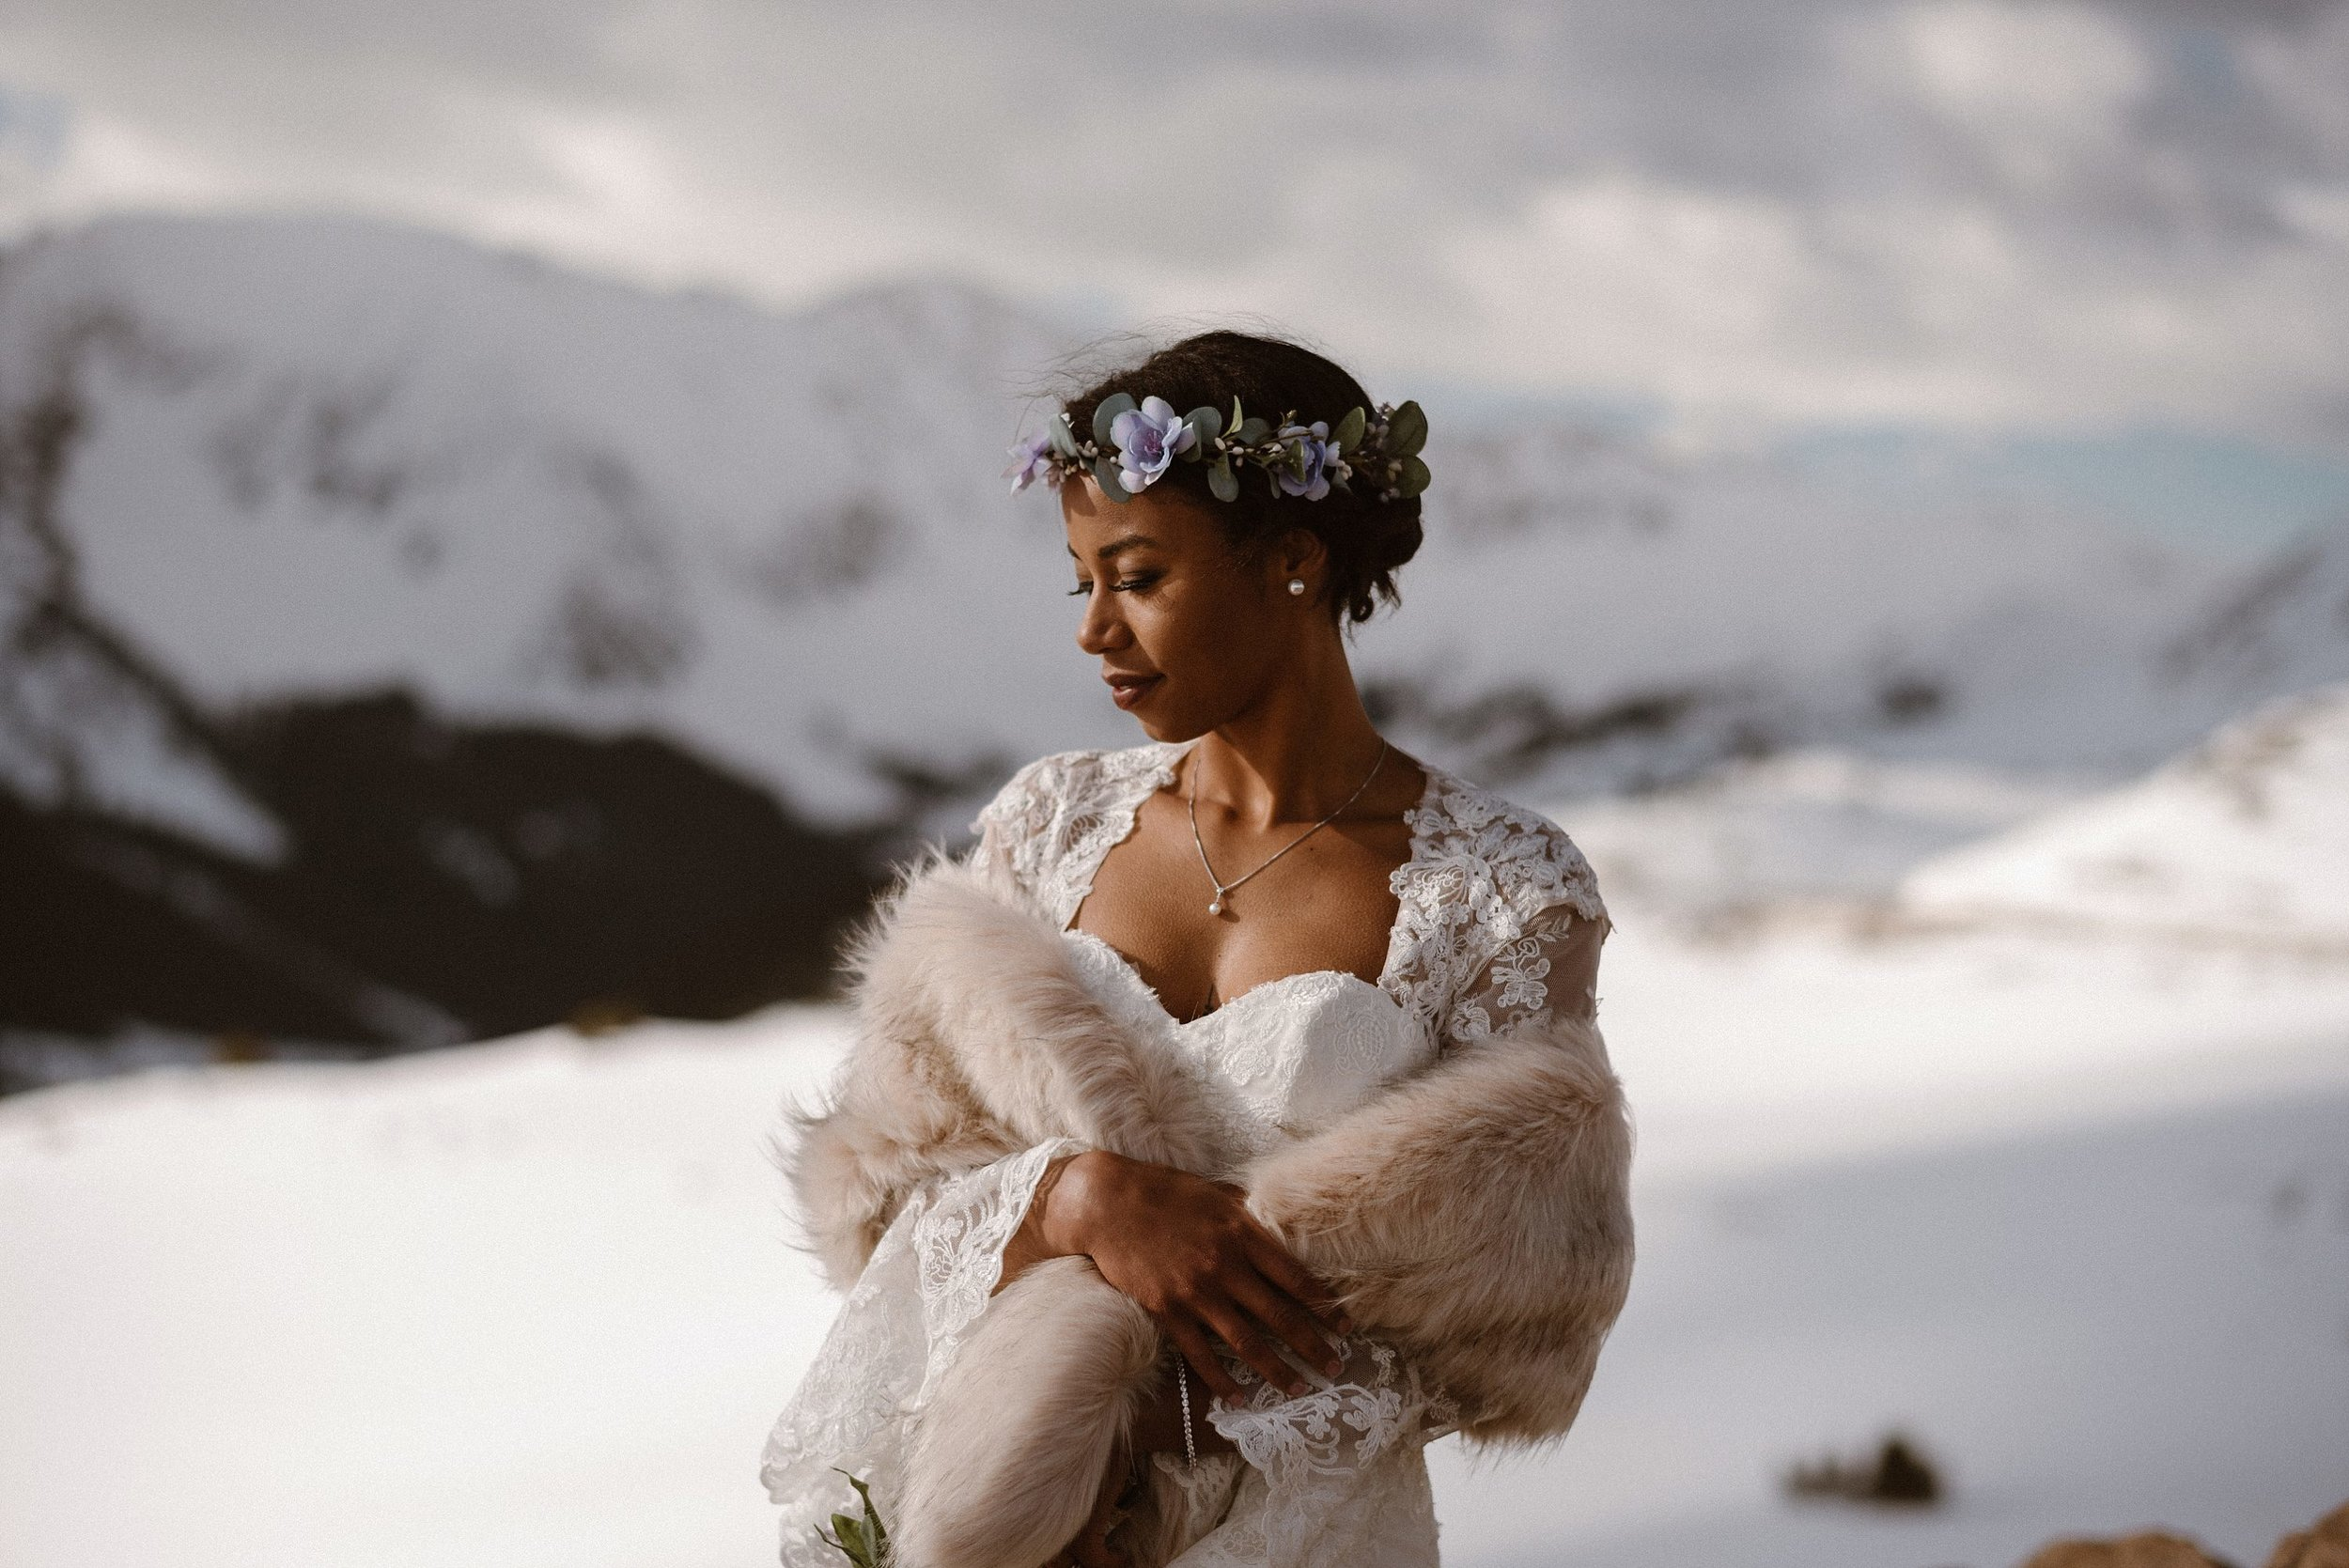 With her lilac flower crown, fitted lace wedding dress and vintage fur, Mikayla was truly a vision from a winter fairytale - a snowy angelic bride. Photos of this intimate Colorado elopement captured by Maddie Mae Photography.